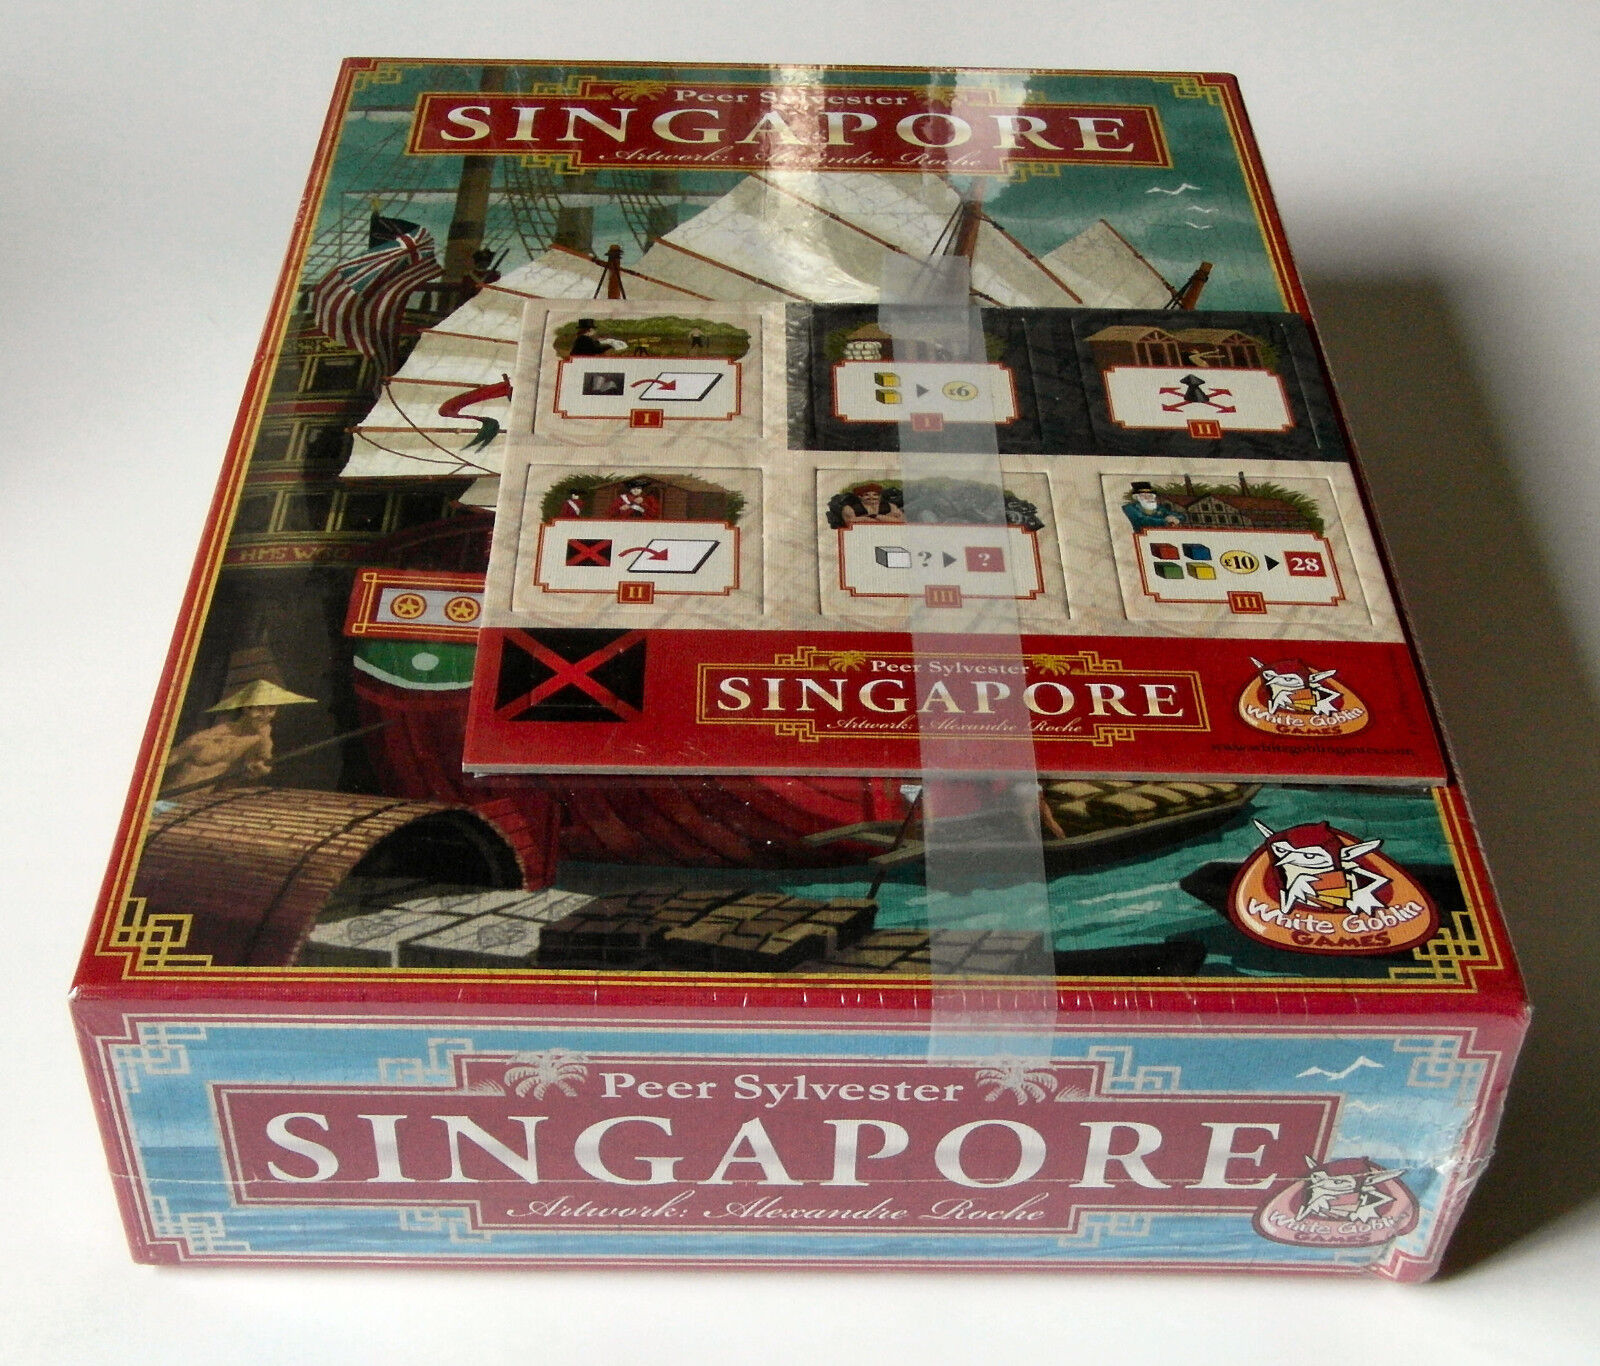 Singapore + Bonus Tiles - White Goblin Games - 2011